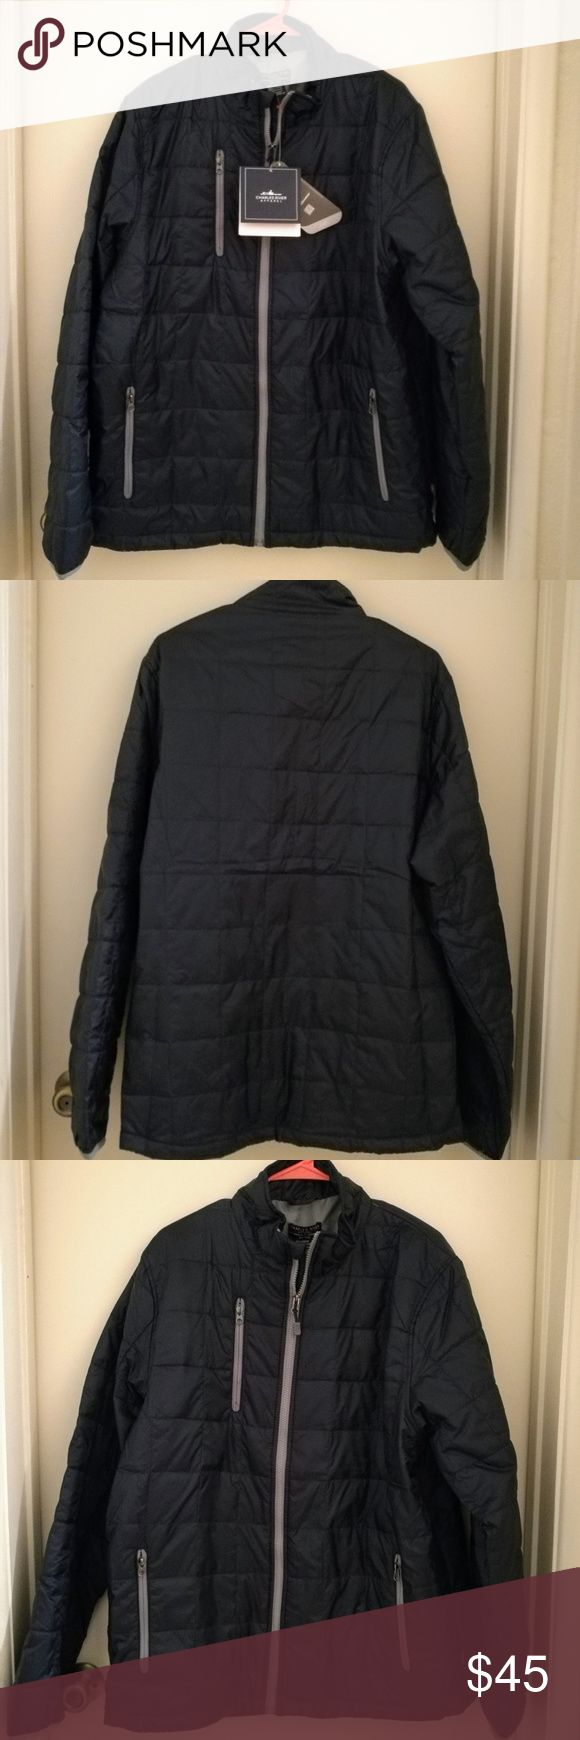 👔 Men's Quilted Packable Jacket Men's Quilted Packable Jacket - navy blue with grey details - elastic cuffs  - double front zippers  - thin and lightweight but surprisingly warm (see last photo) - can easily be folded/compressed quite flat for easy packing - Dobby Polyester shell and lining made from recycled bottles! Charles River Jackets & Coats